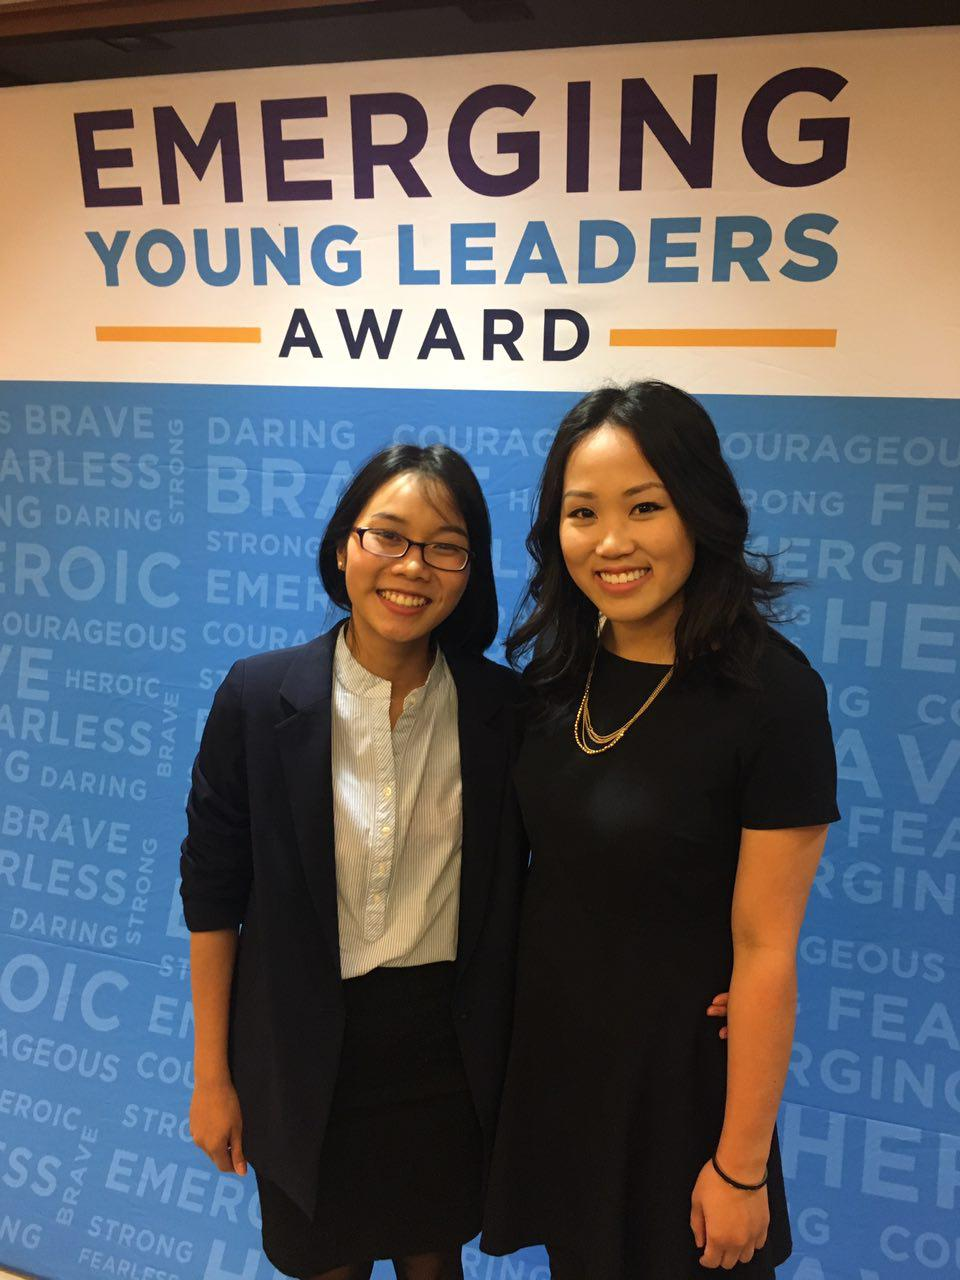 Quyên Lưu (left), of Todocabi.vn, is honored as one of ten global emerging young leaders by the U.S. State Department on May 4, 2017.(Photo: Loa/Nhựt Phó)